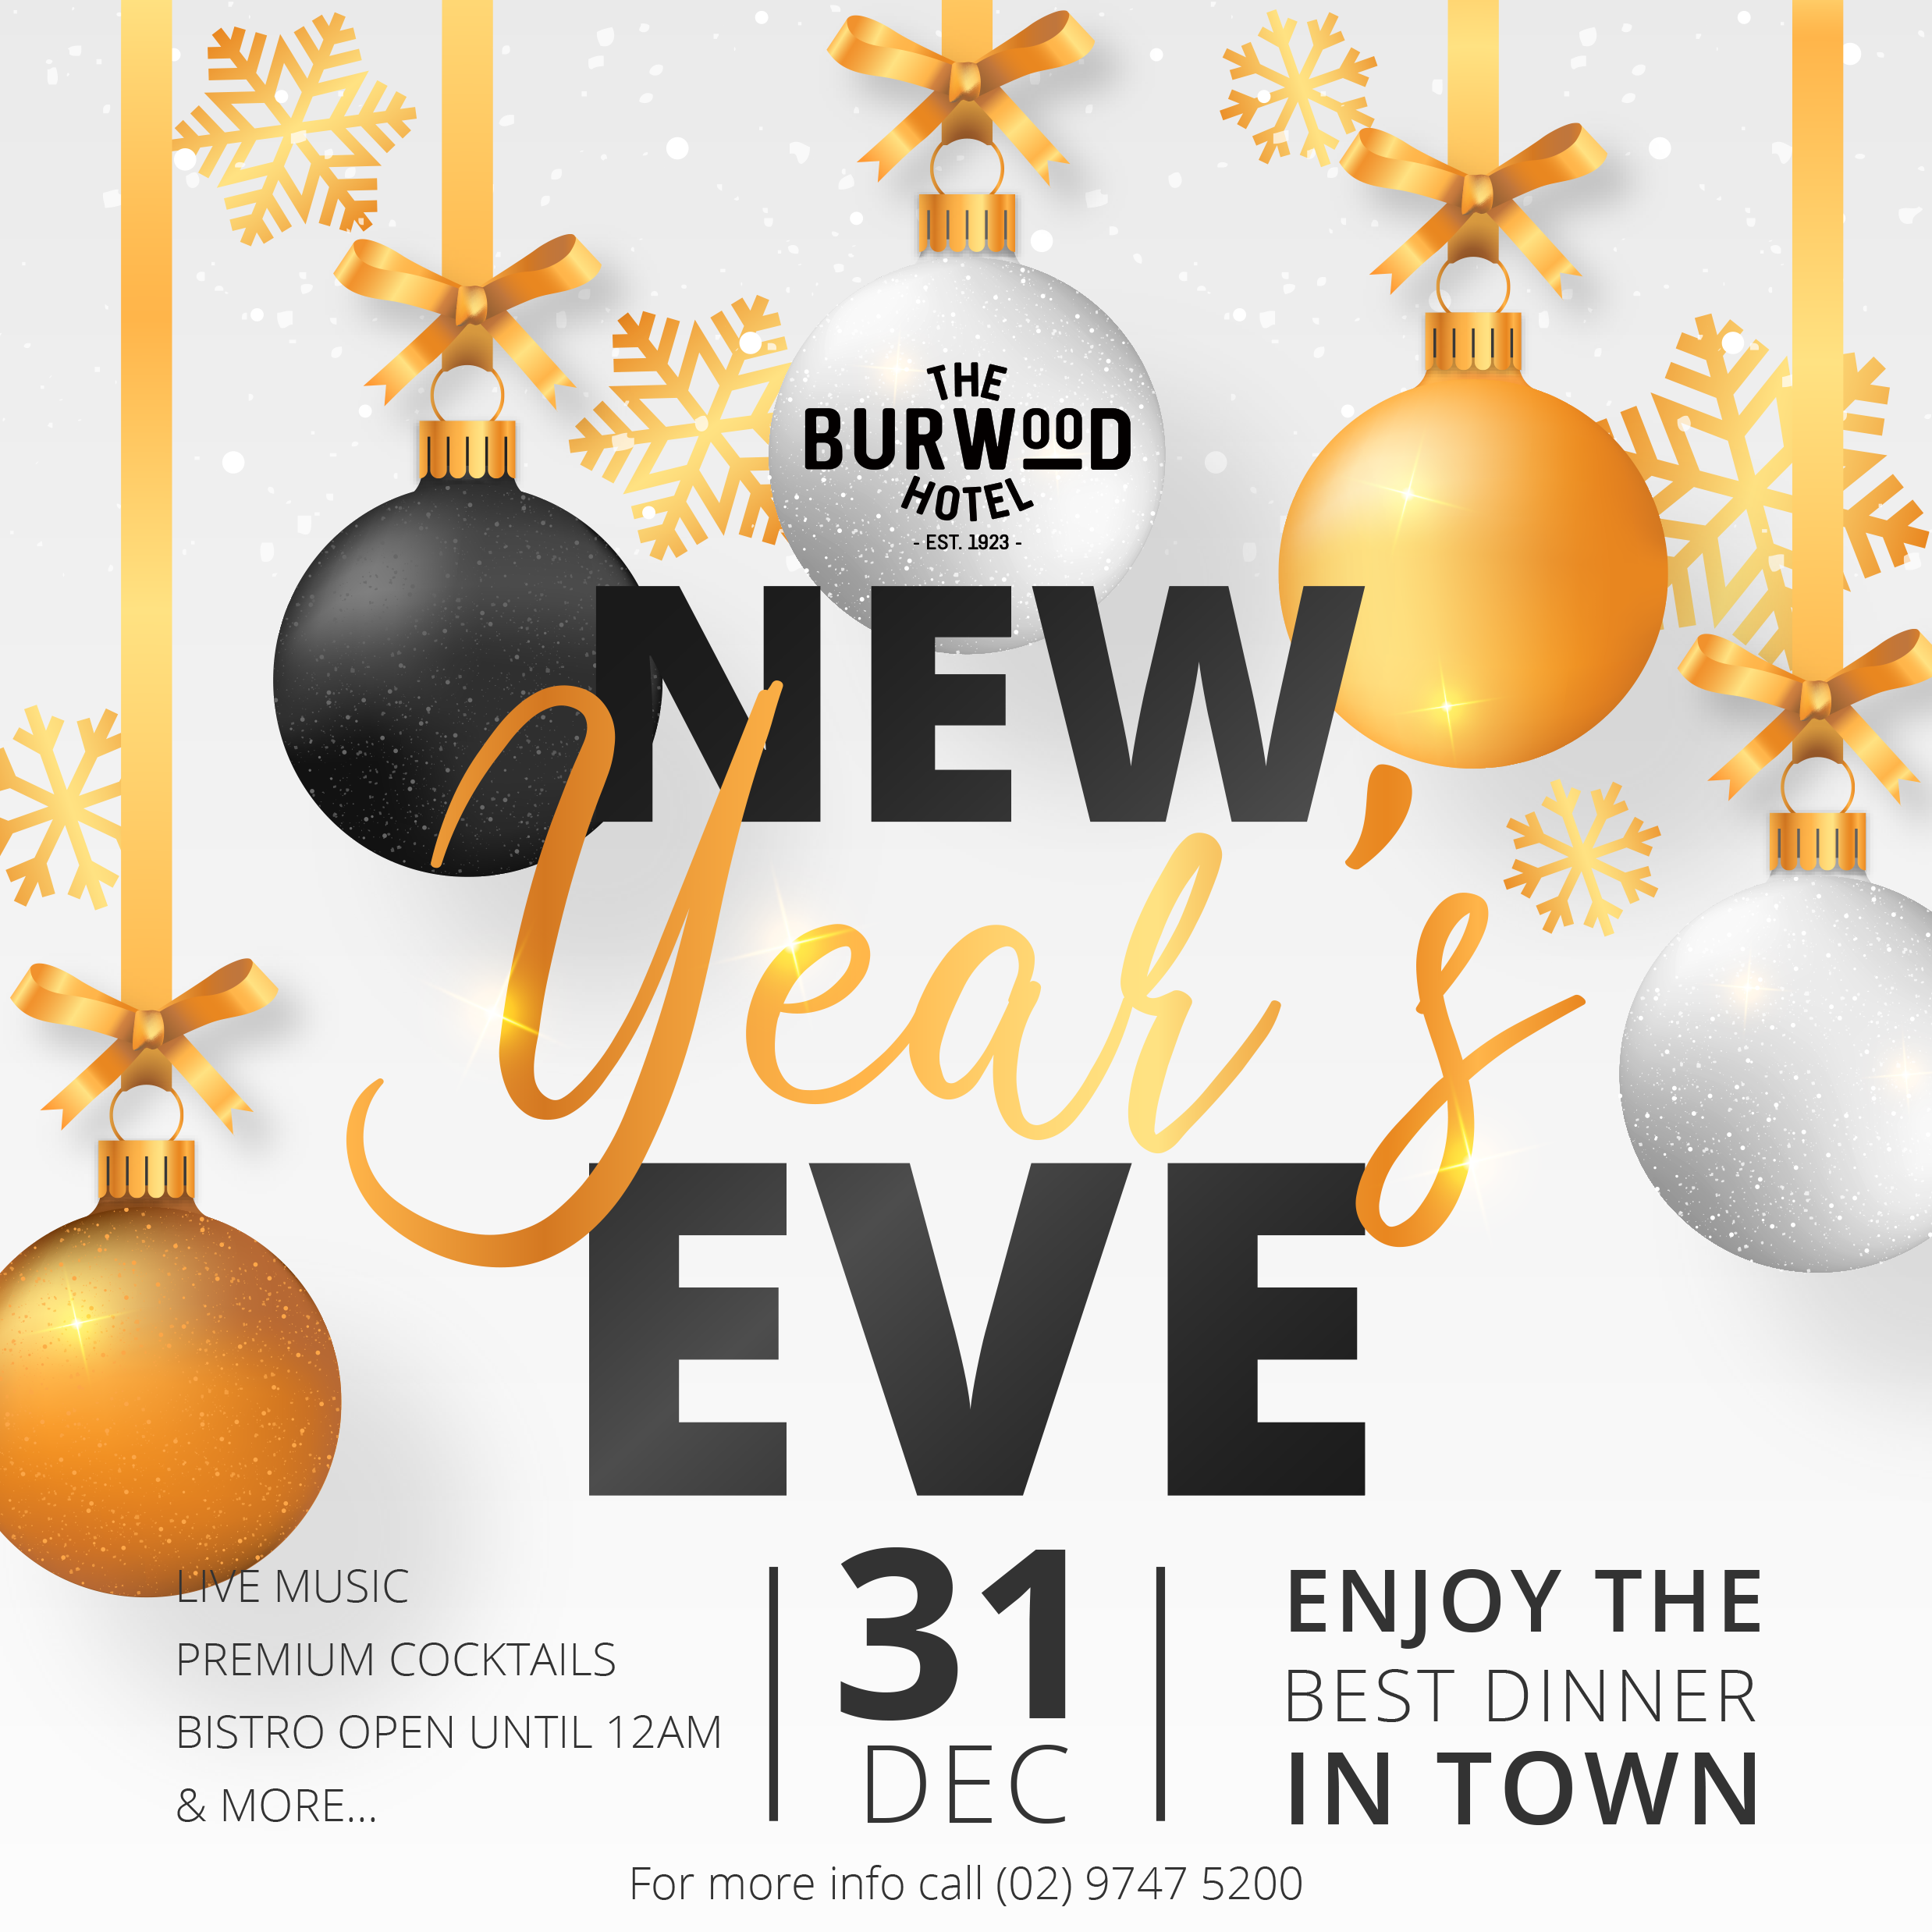 Celebrate New Year's Eve at The Burwood Hotel with live